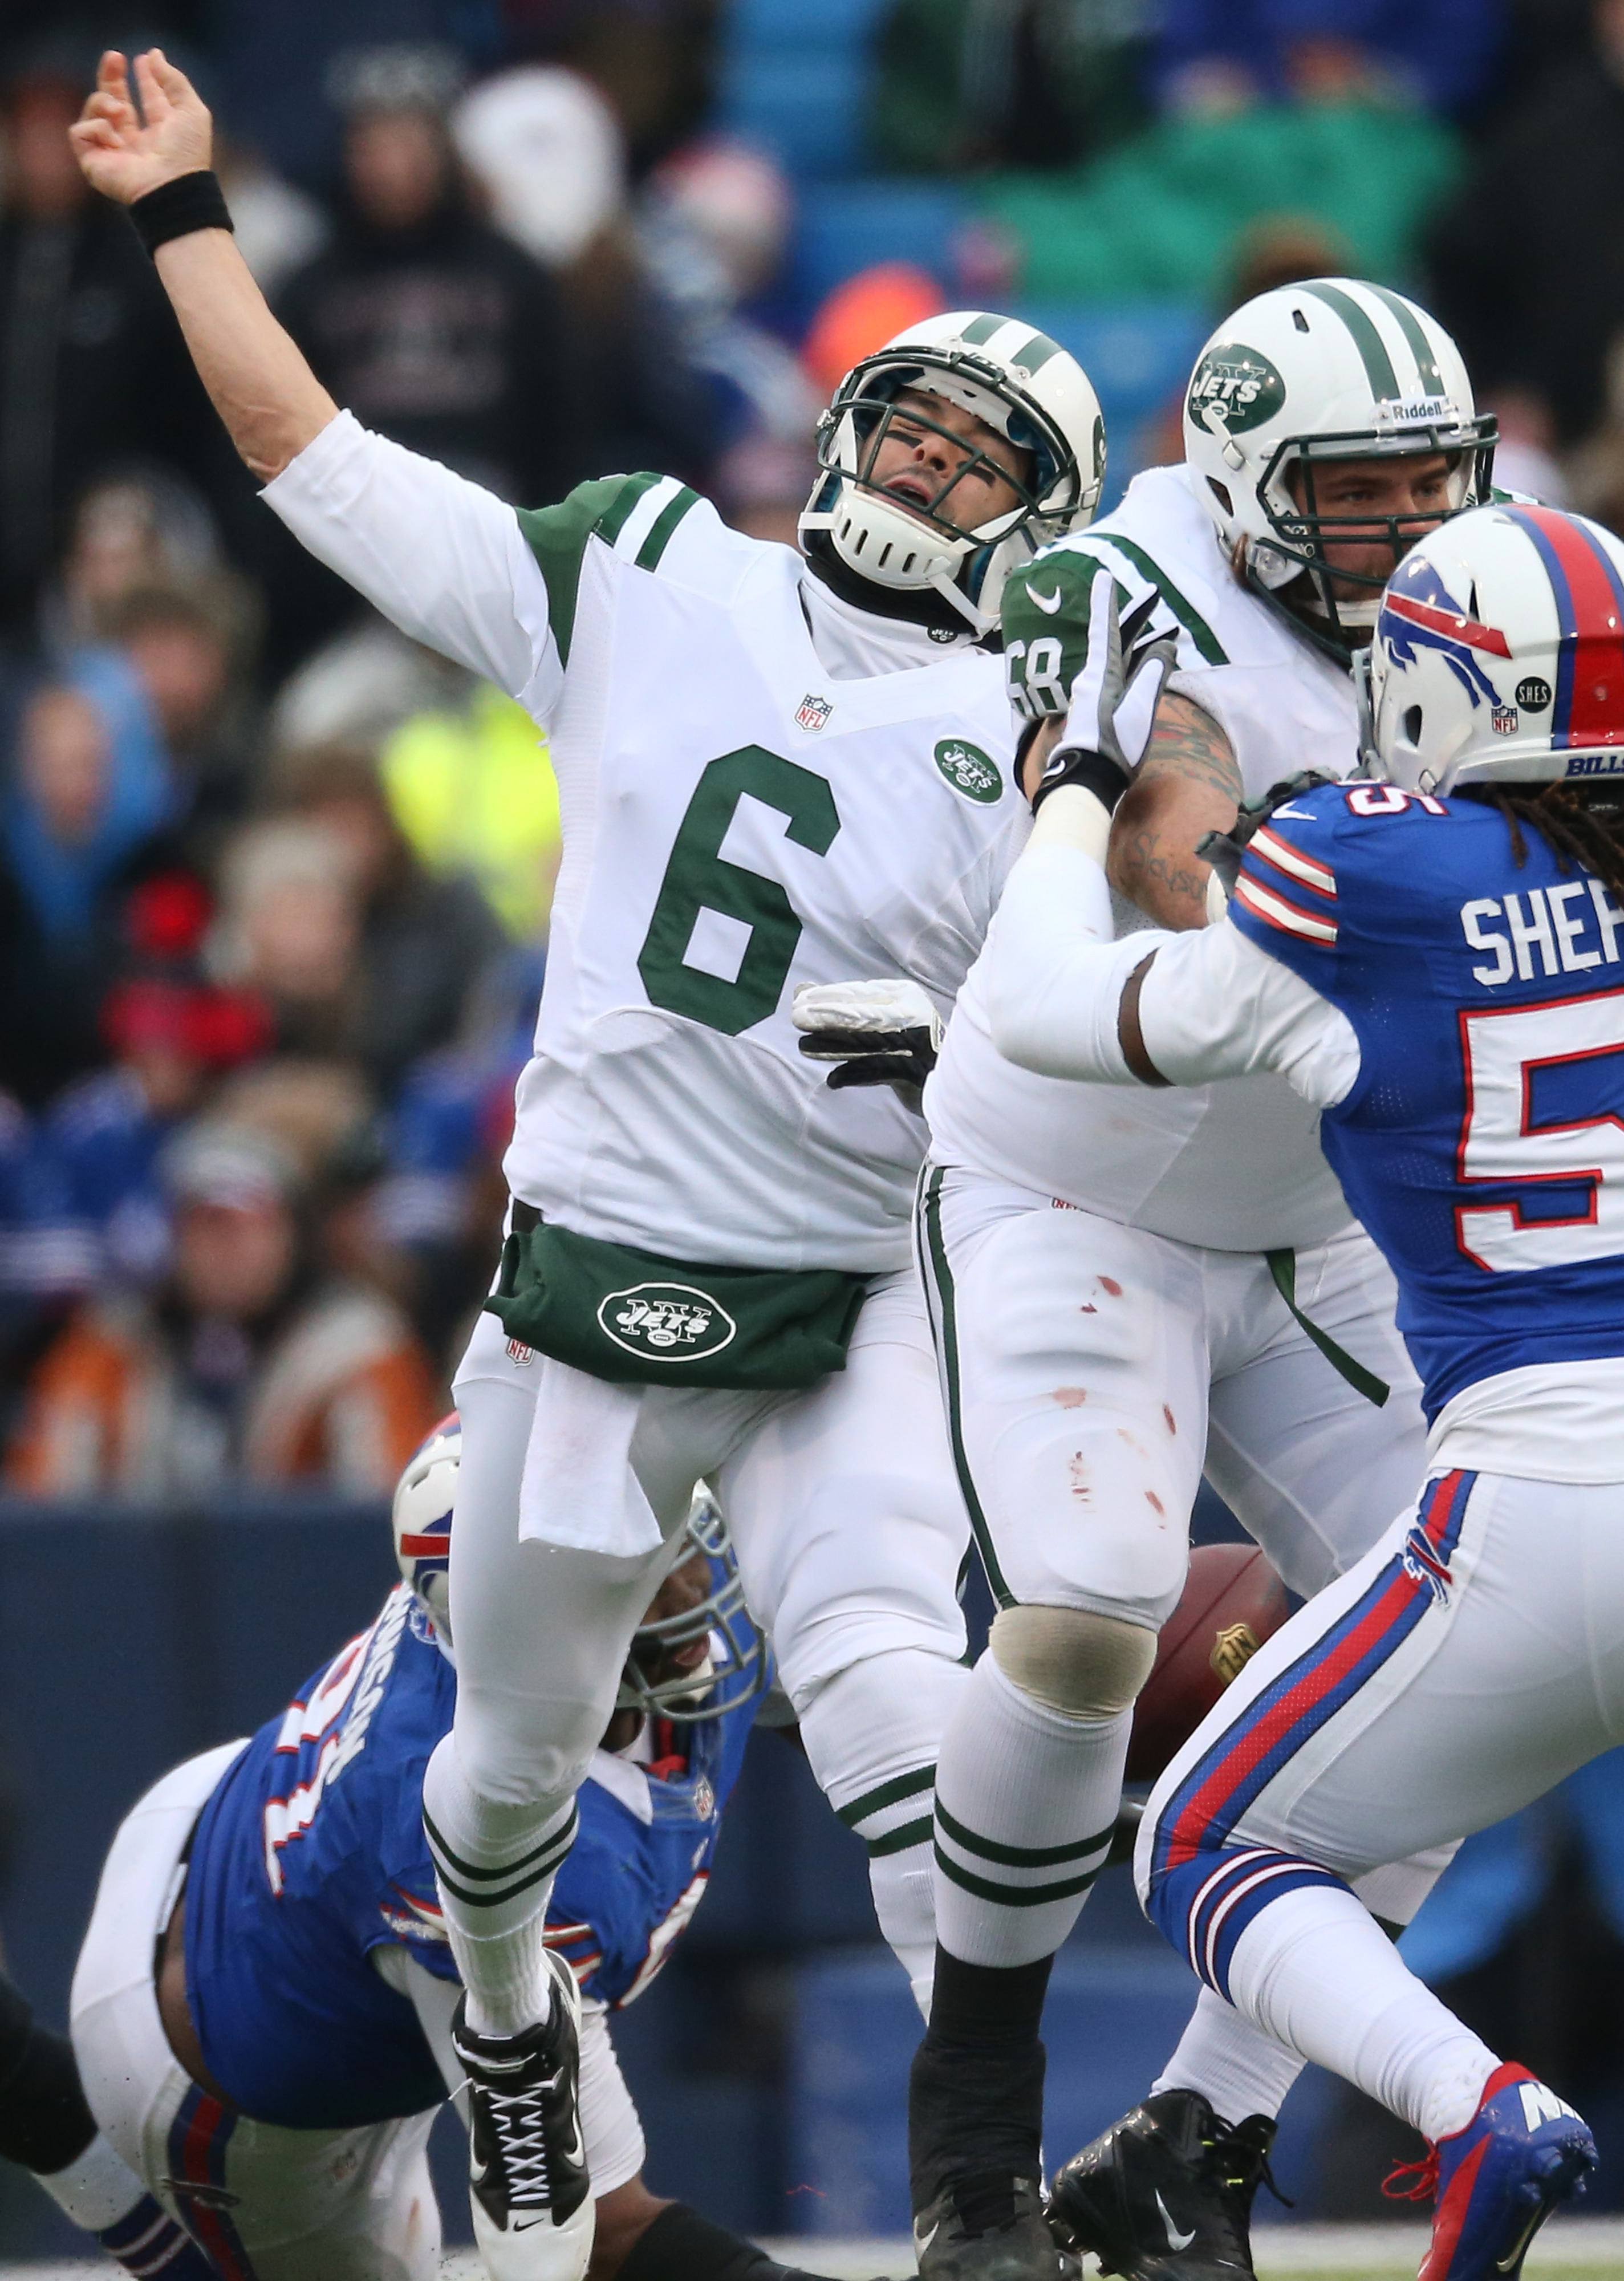 Mark Sanchez projected to be Jets starting QB